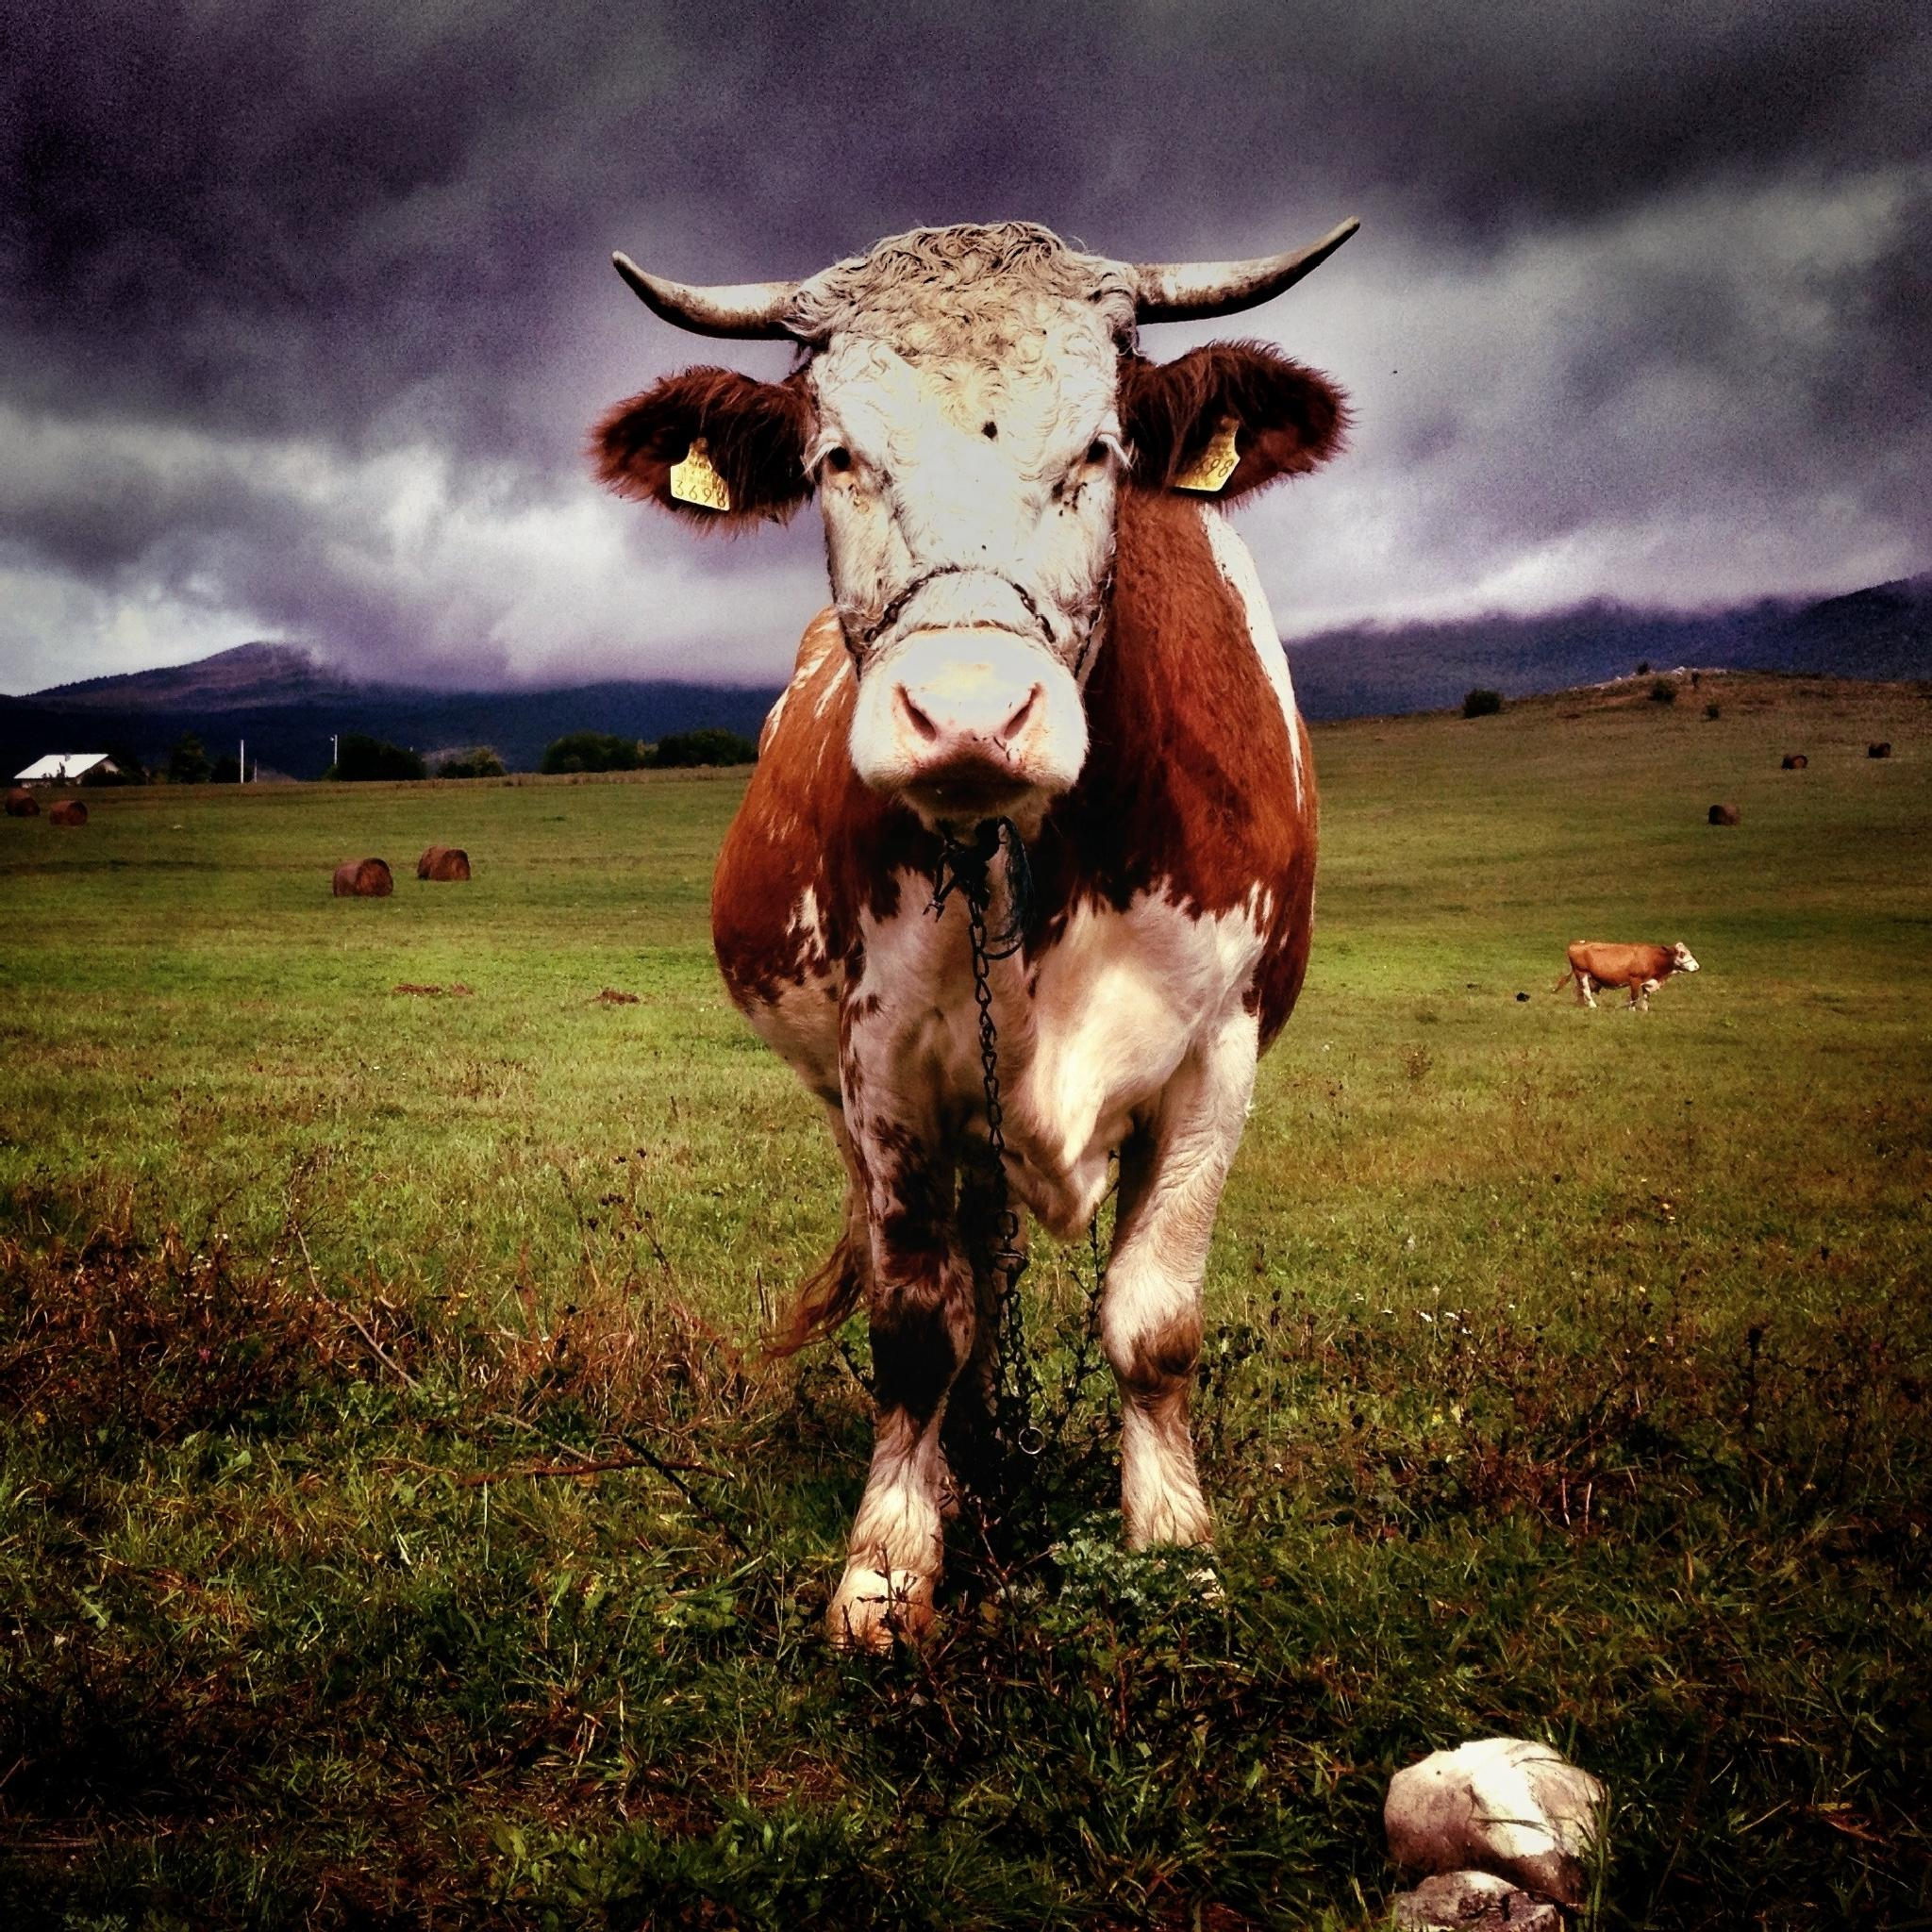 Mooo! by Arnold Finderle